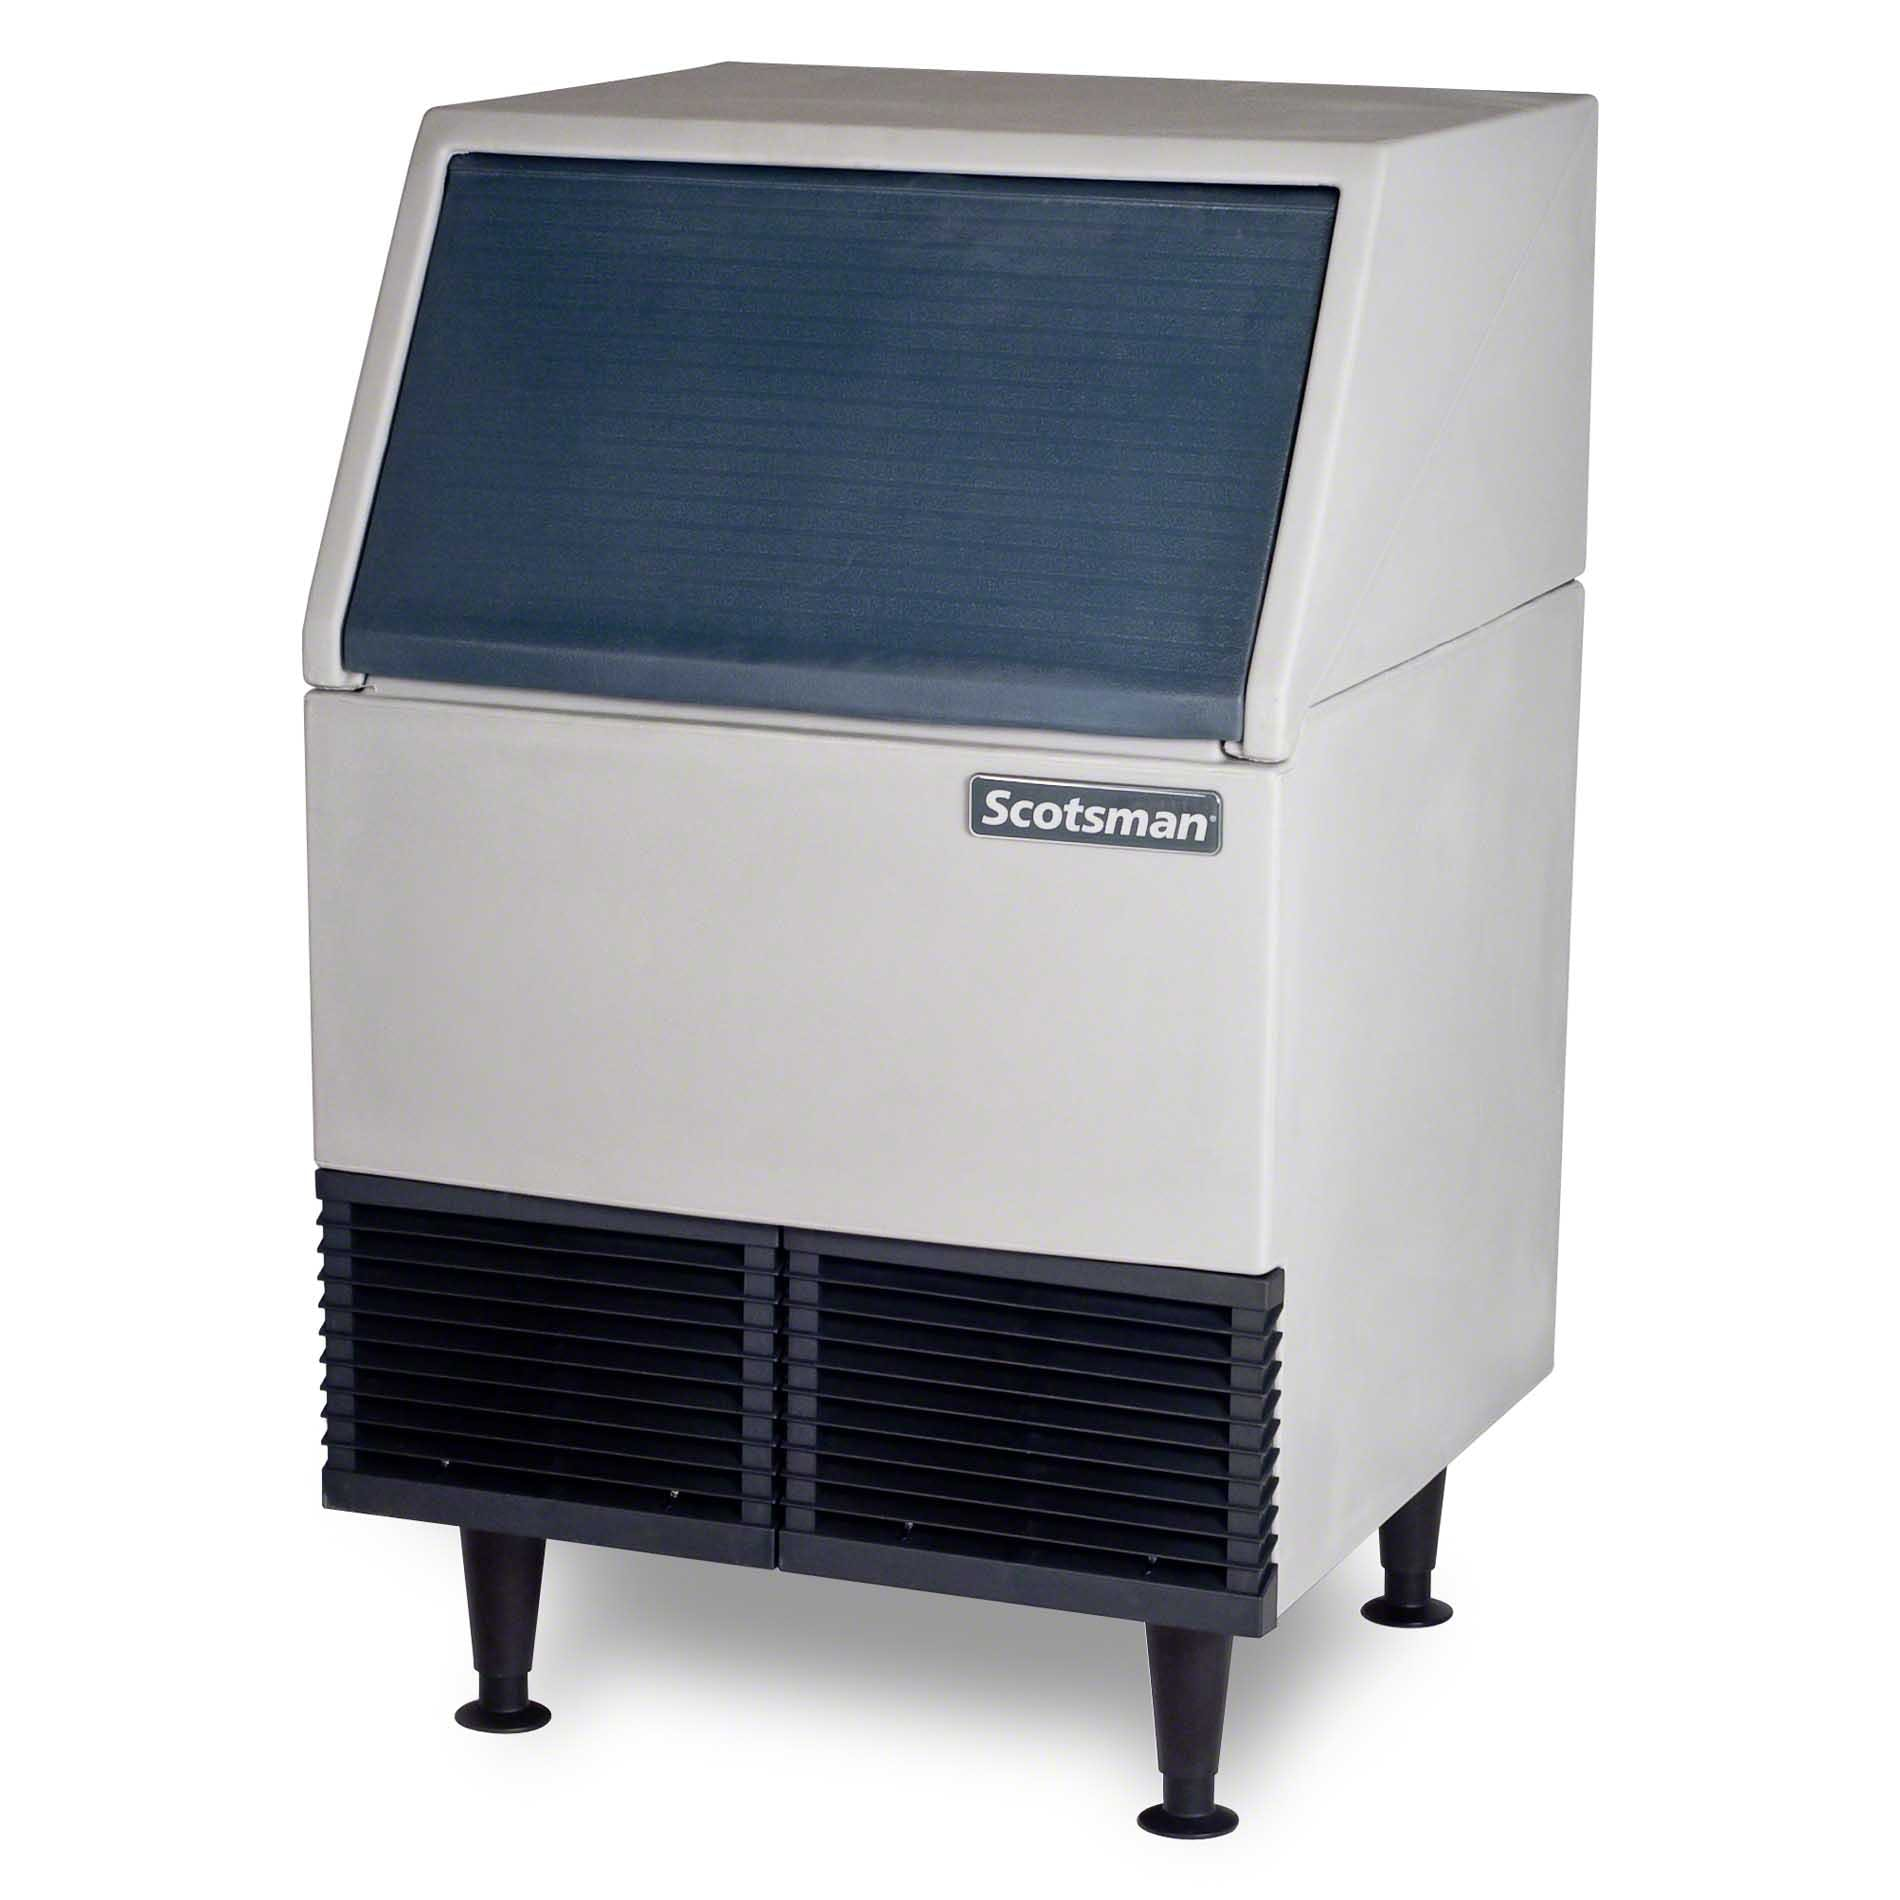 Scotsman - AFE424W-1A 395 lb Self-Contained Flake Ice Machine Ice machine sold by Food Service Warehouse